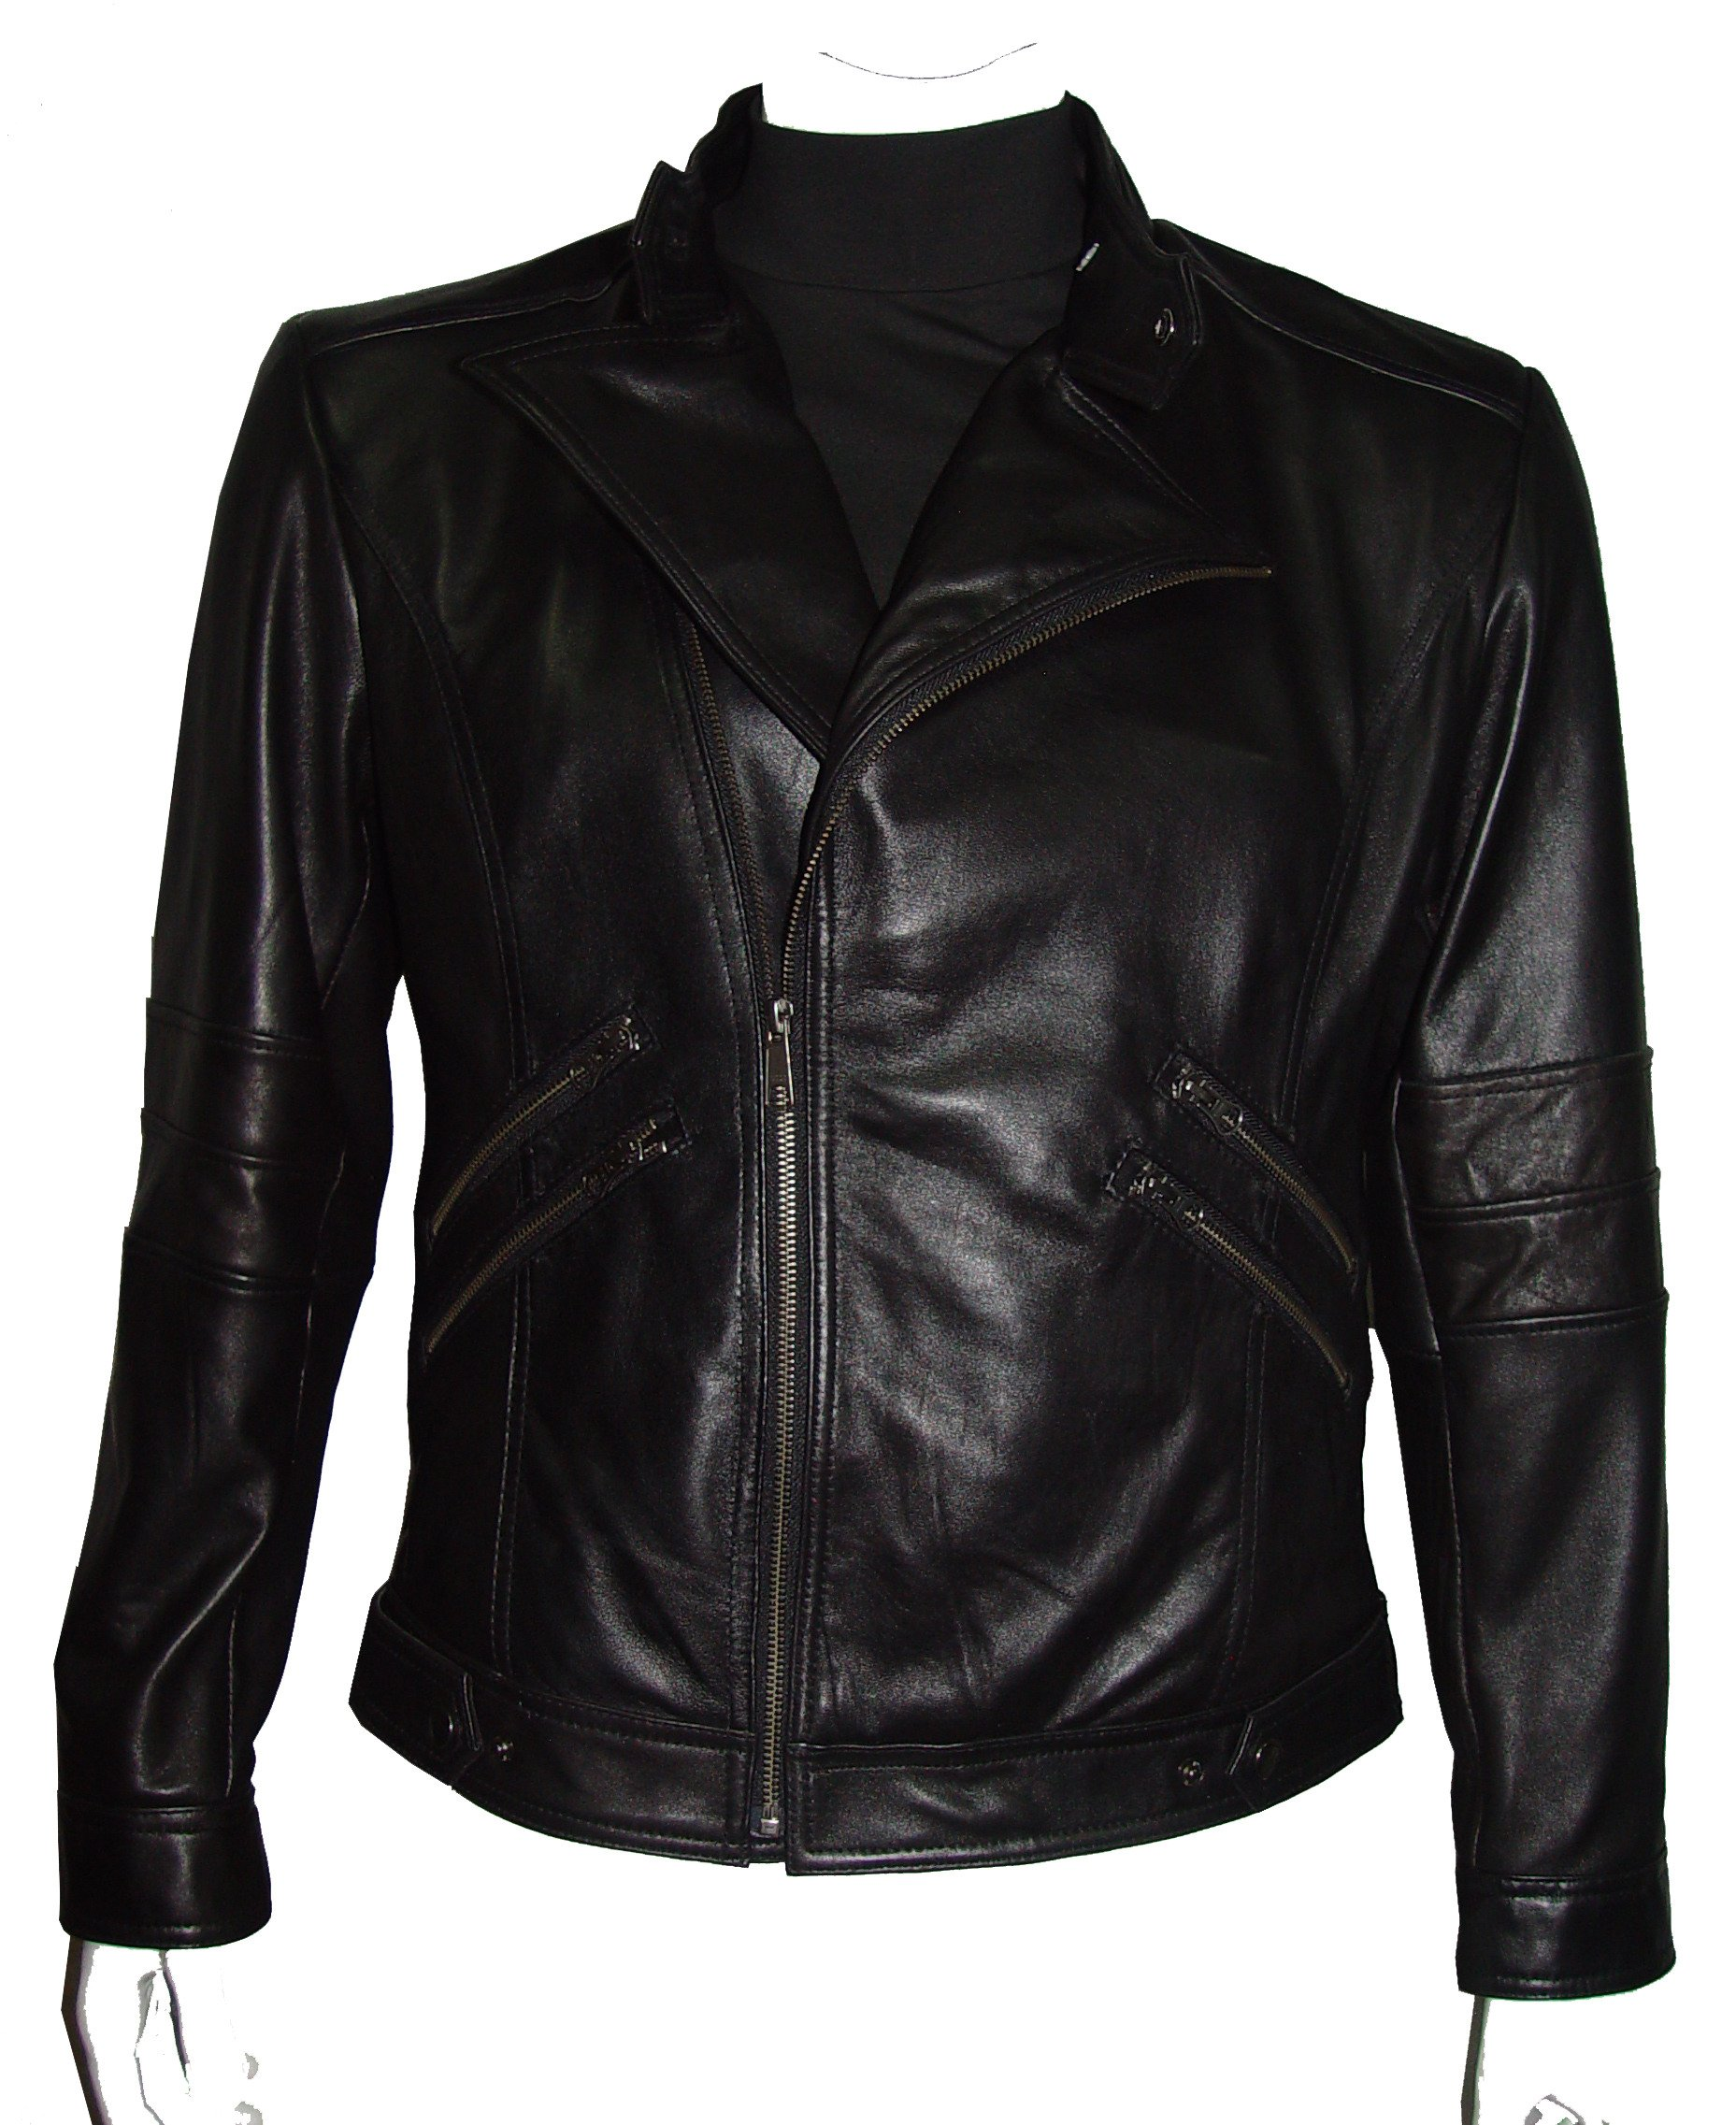 Nettailor Tall Big Man 1078 BIG TALL Size 4 Season Leather Jacket Zip Out